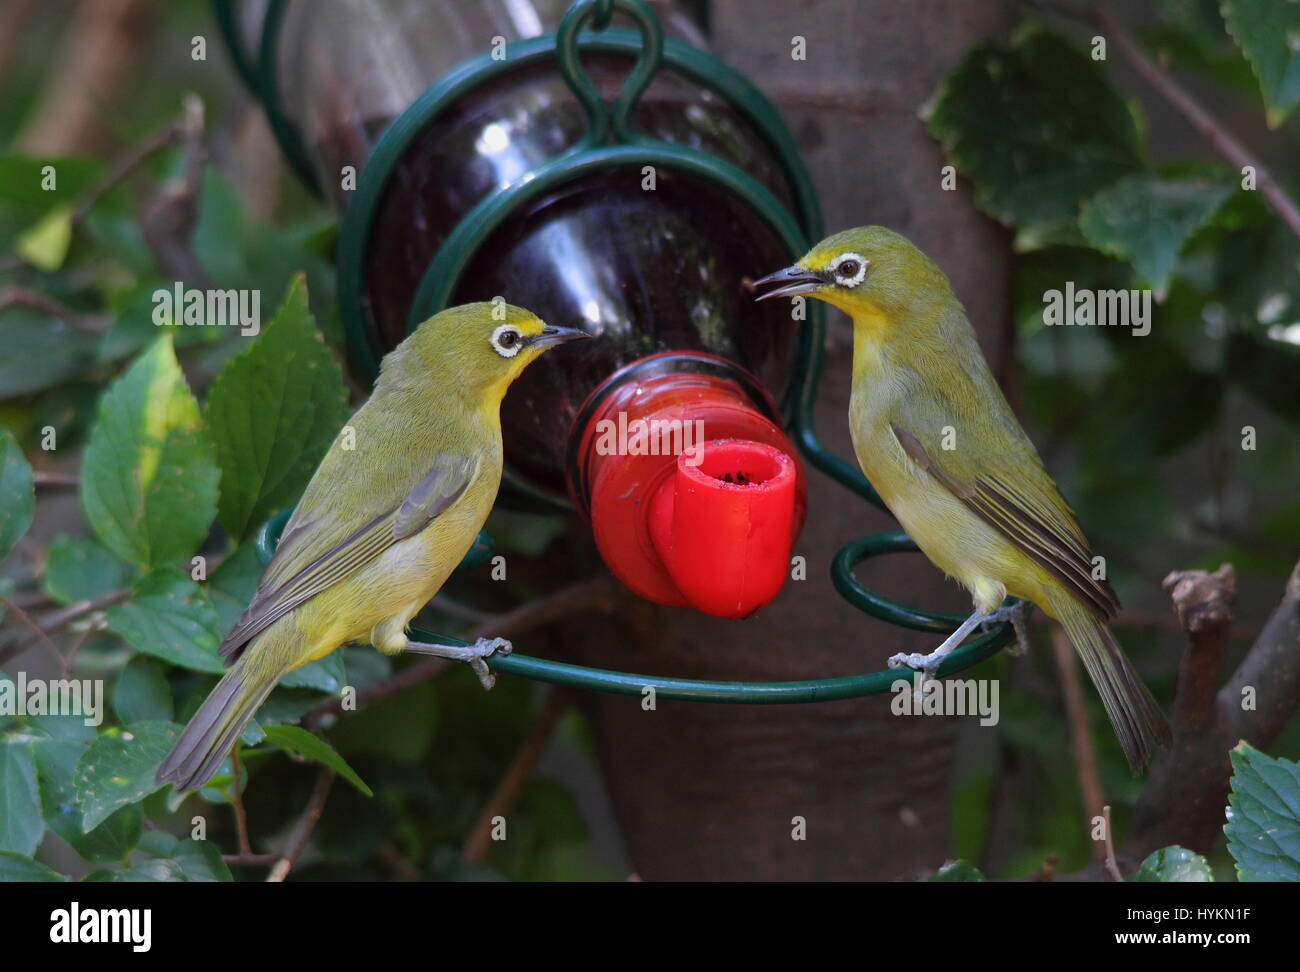 Wildlife in urban spaces - two green birds at a feeder - Stock Image